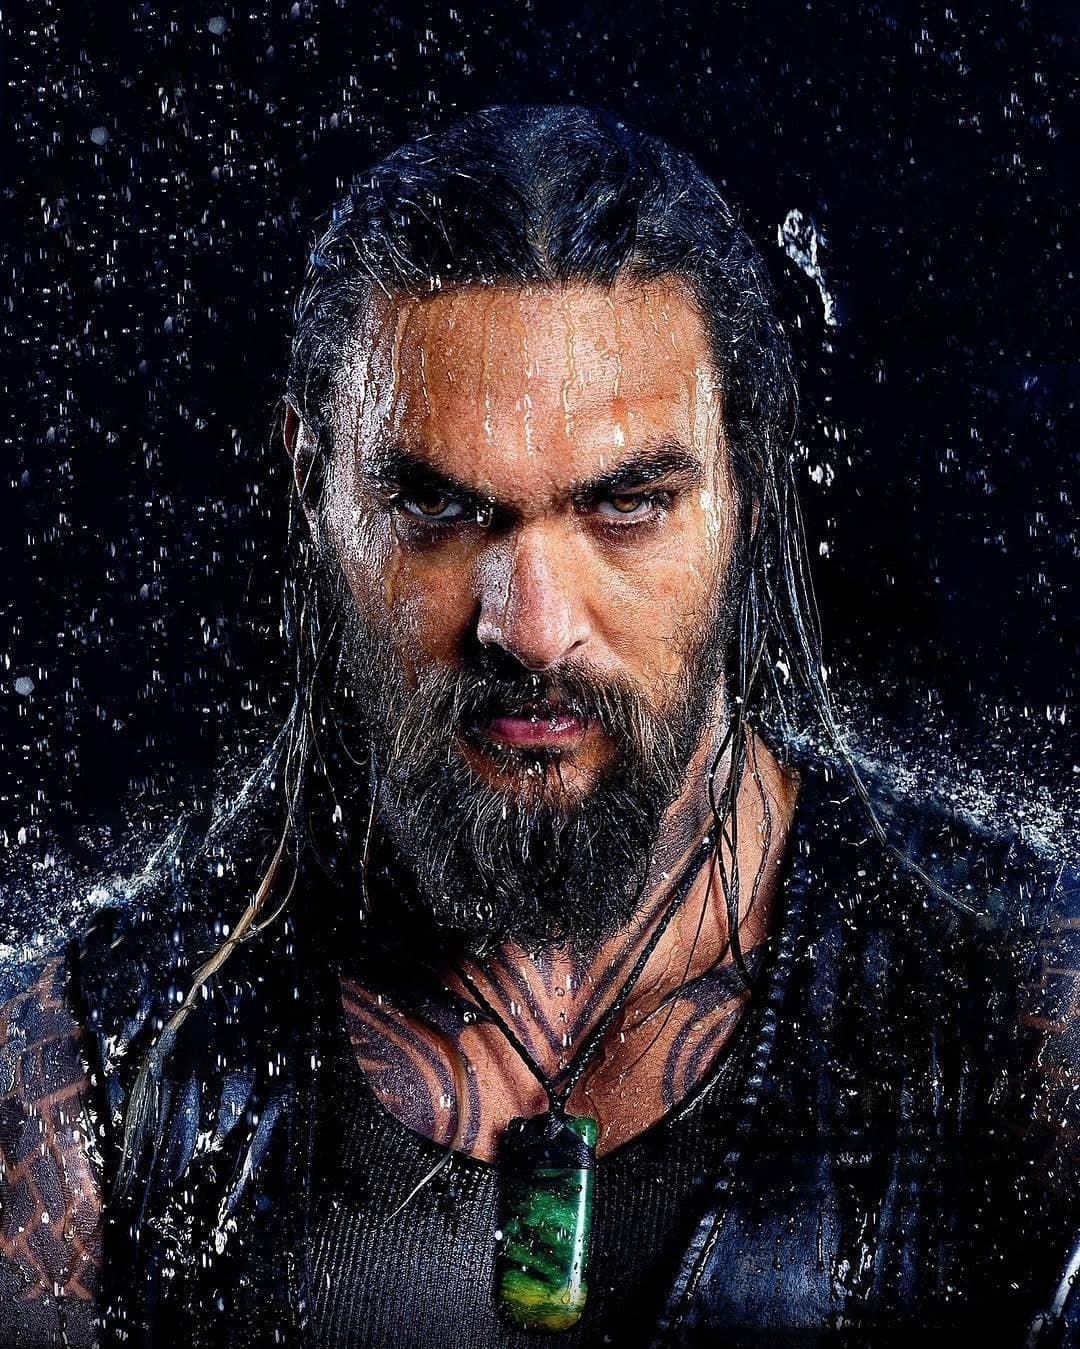 Wishing a very Happy Birthday to the one and only Jason Momoa !!!